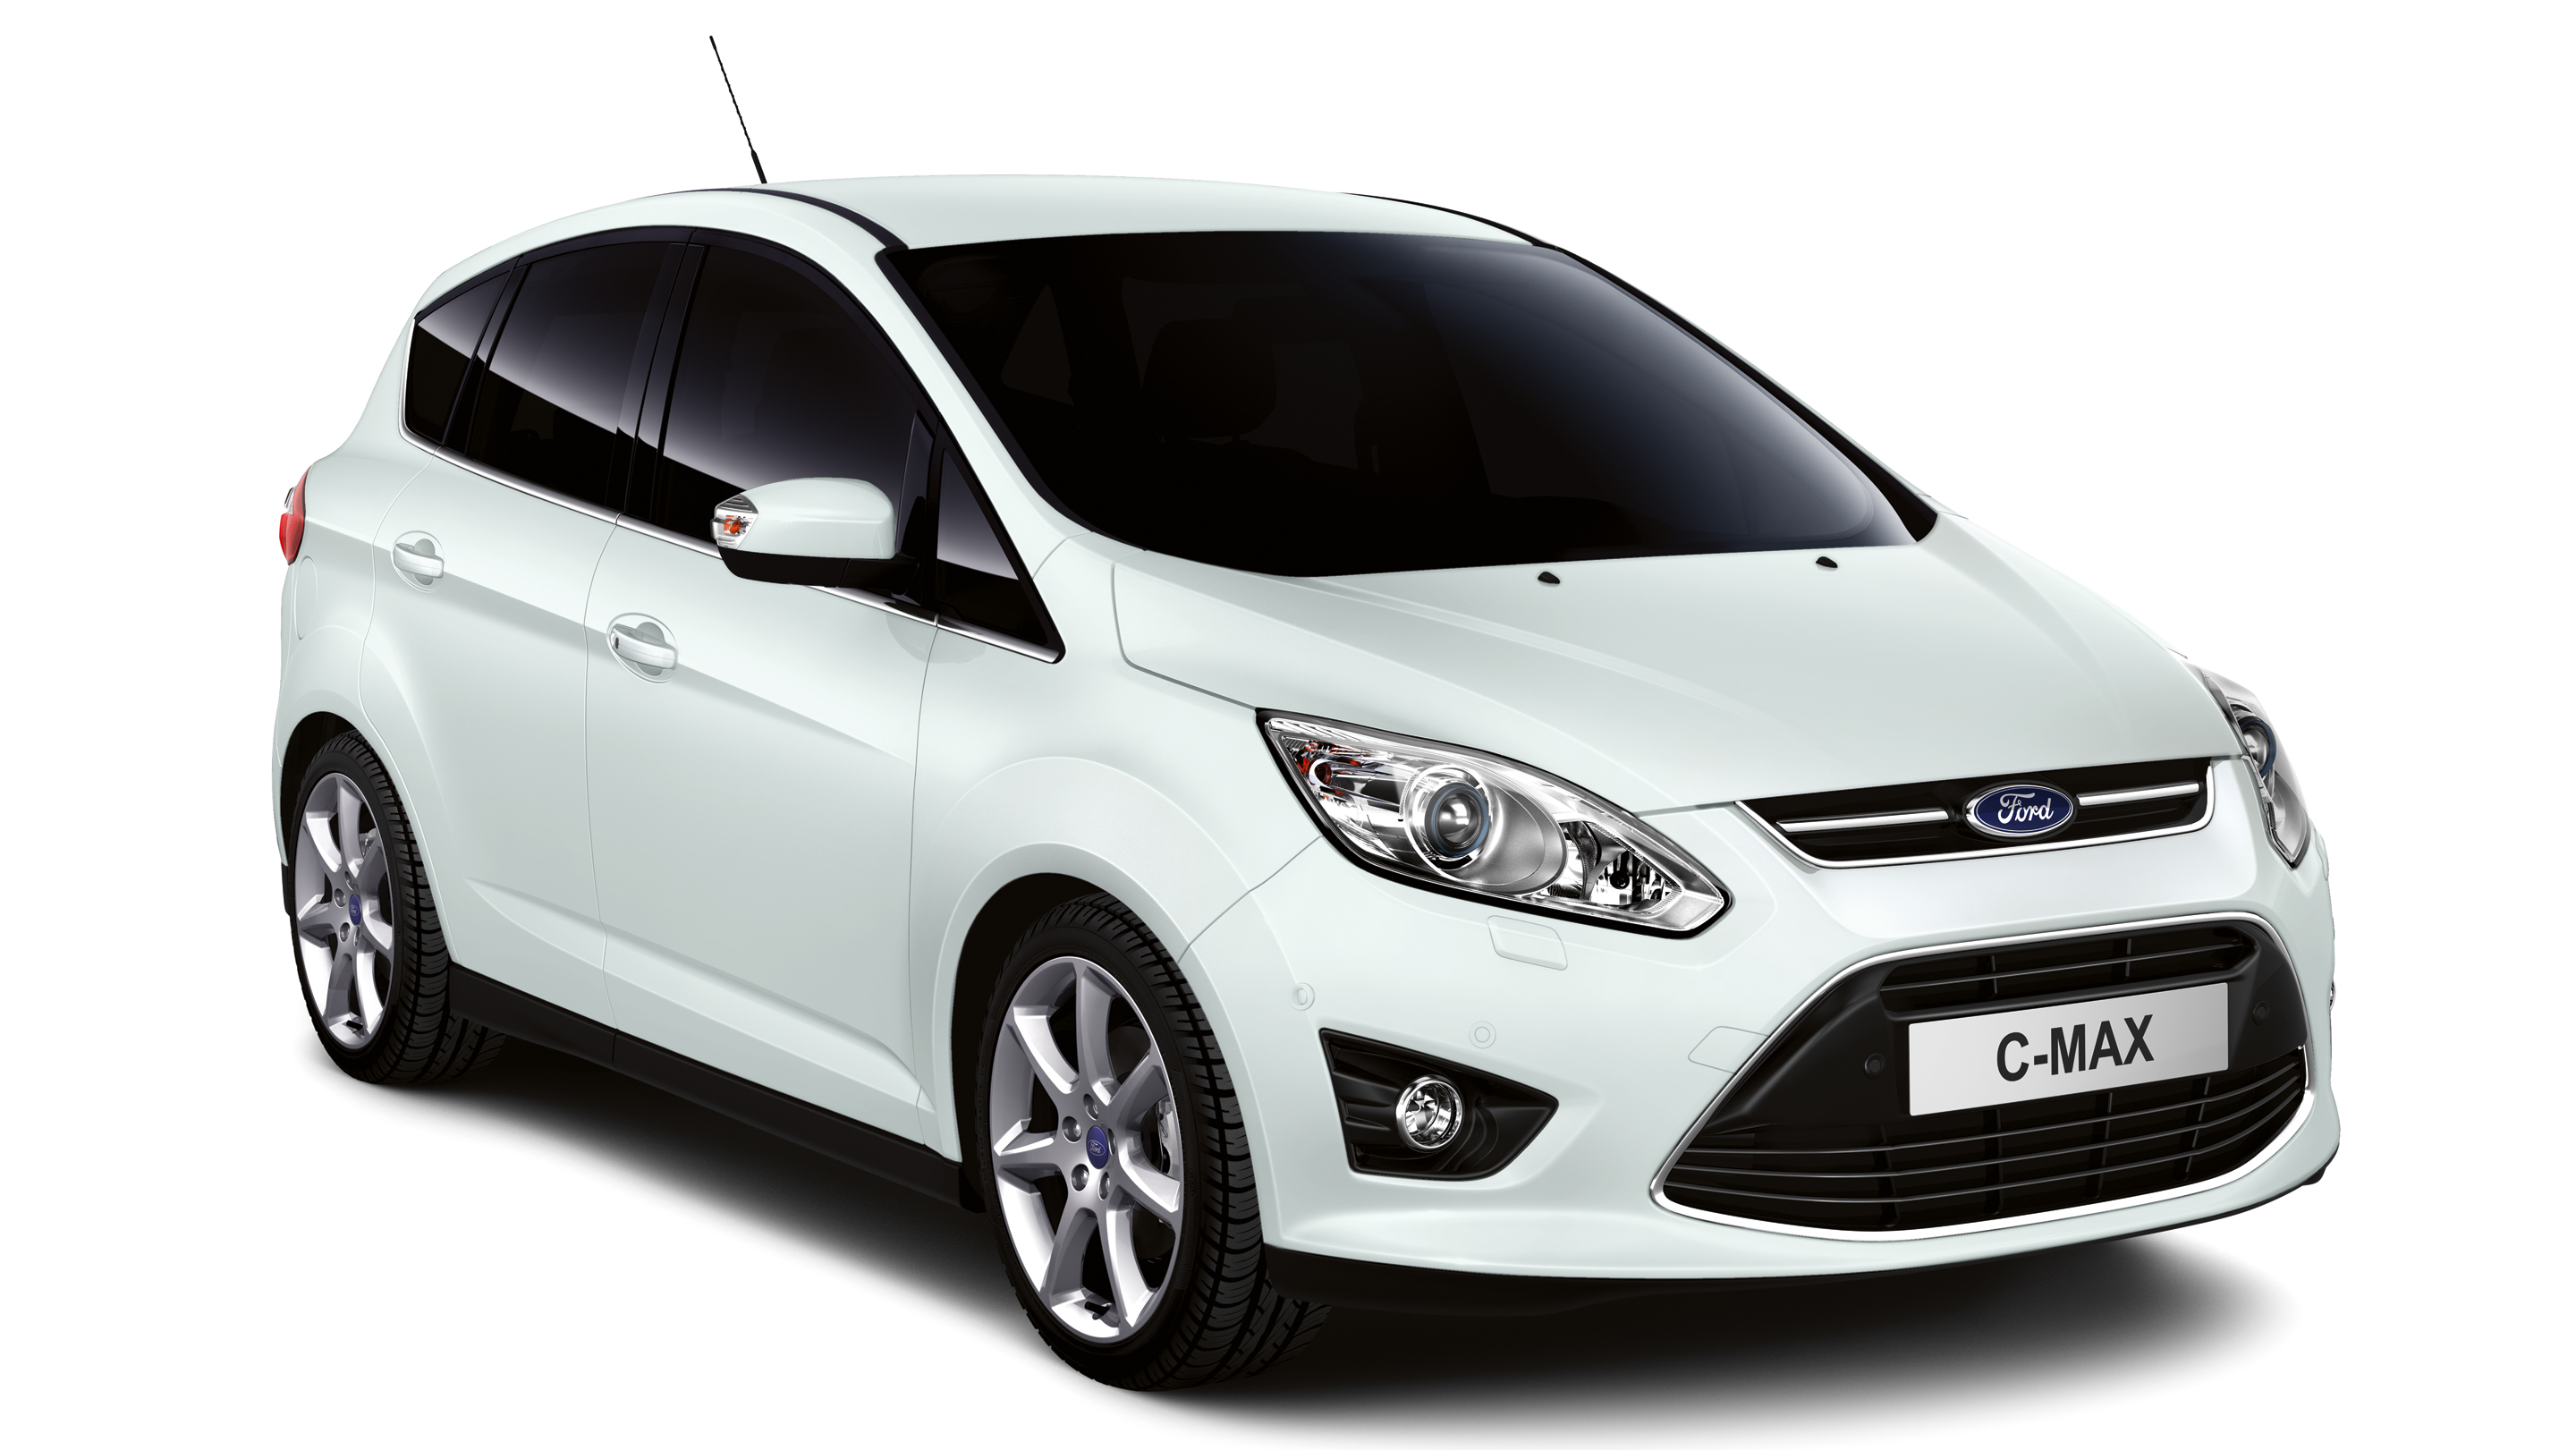 Pictures of ford c-max #14